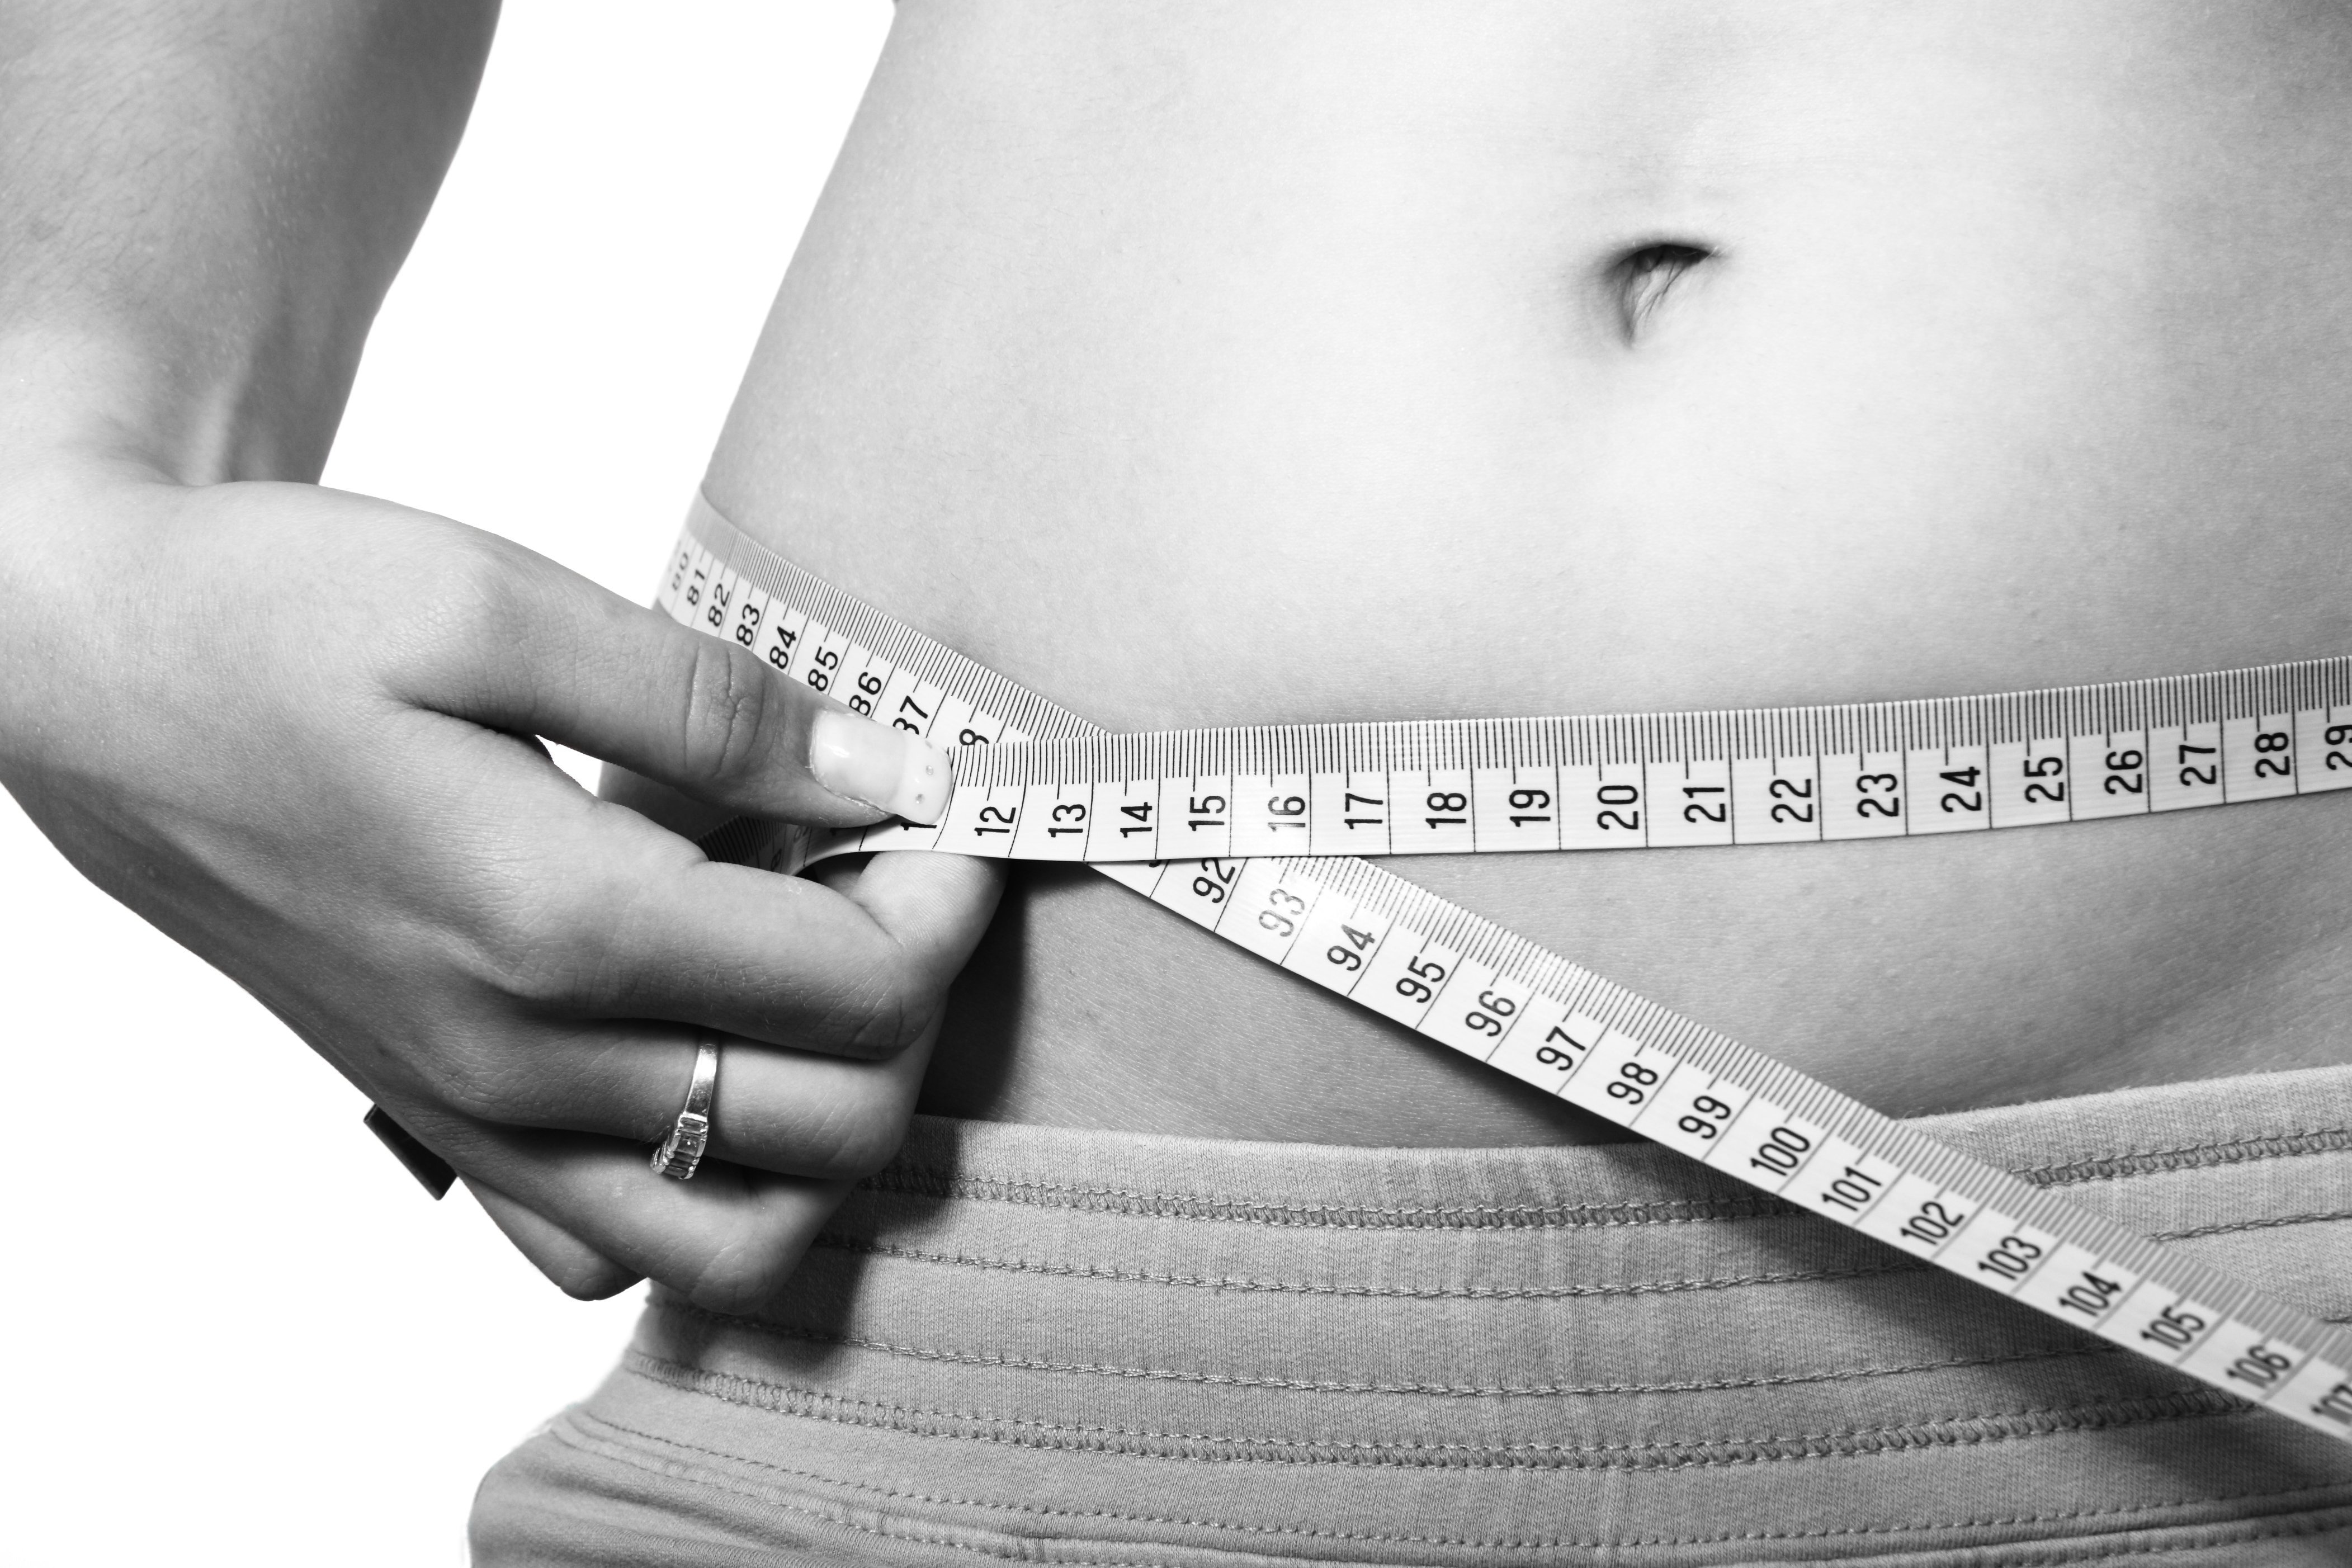 Fad diets that don't really work - Pexel